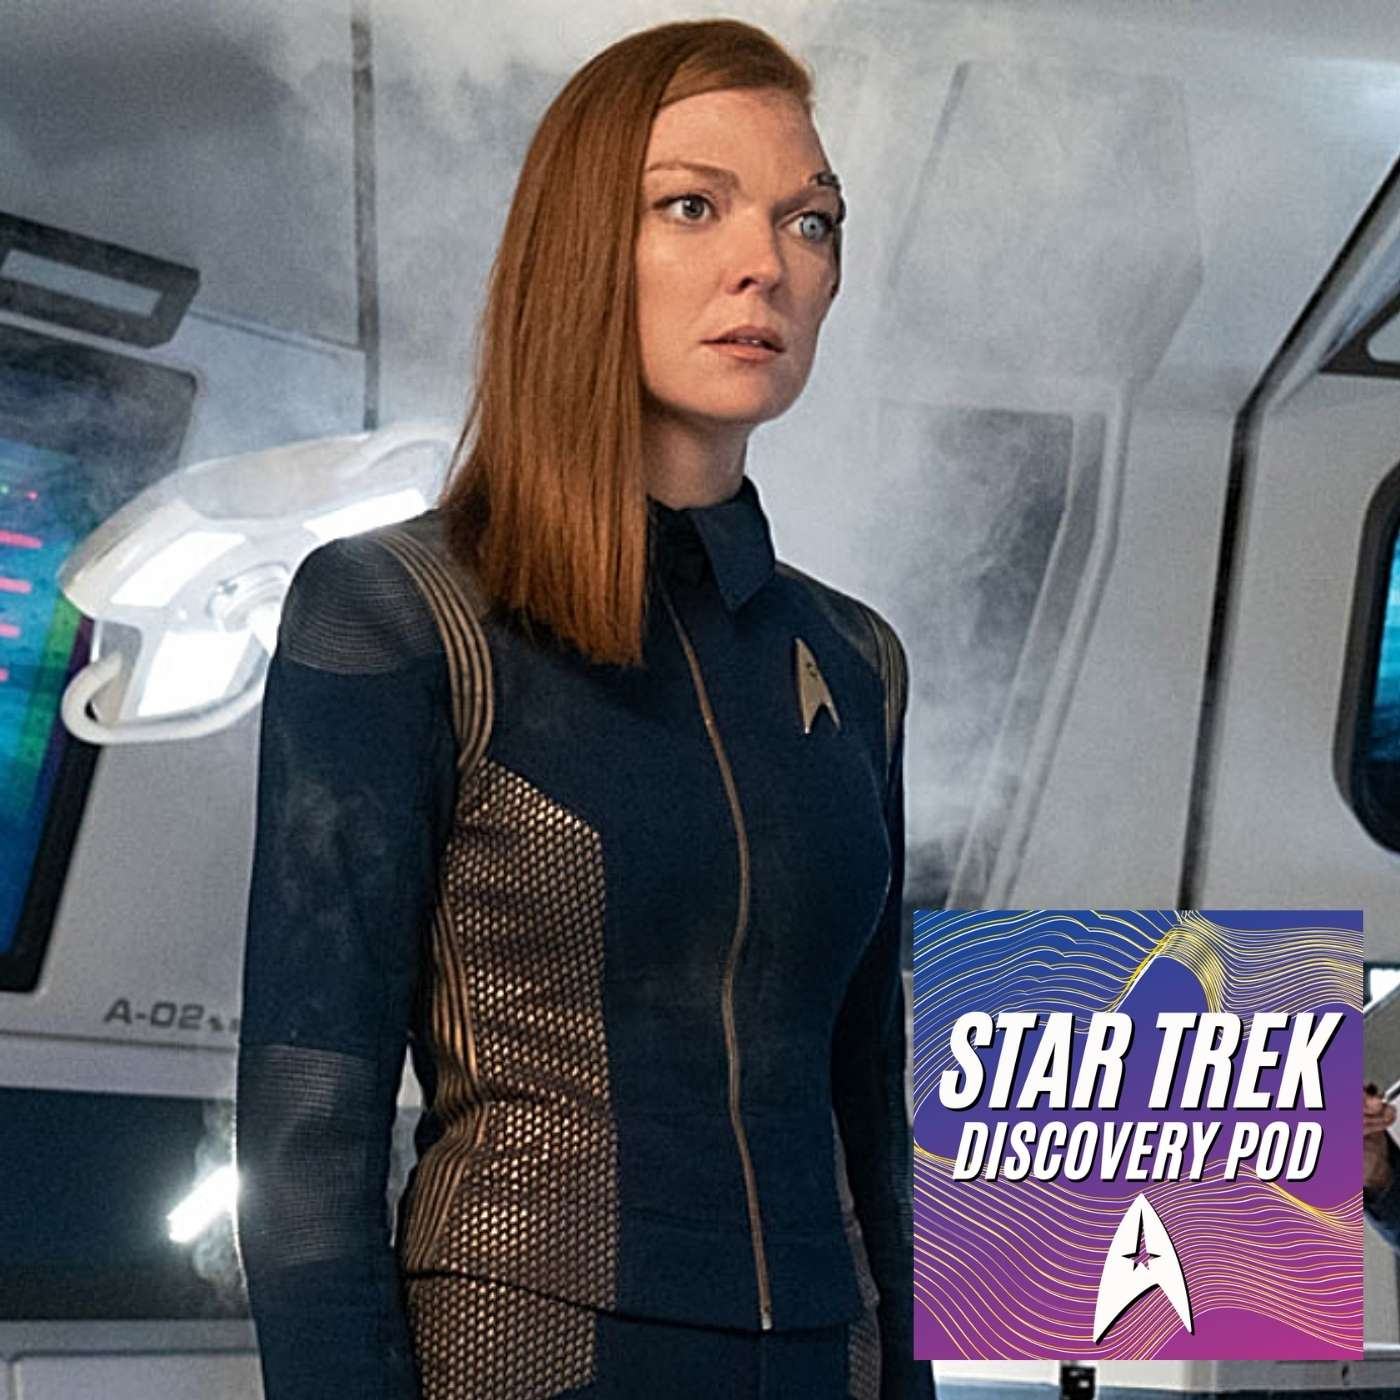 Star Trek Discovery Season 3 Episode 2 Review 'Far From Home'